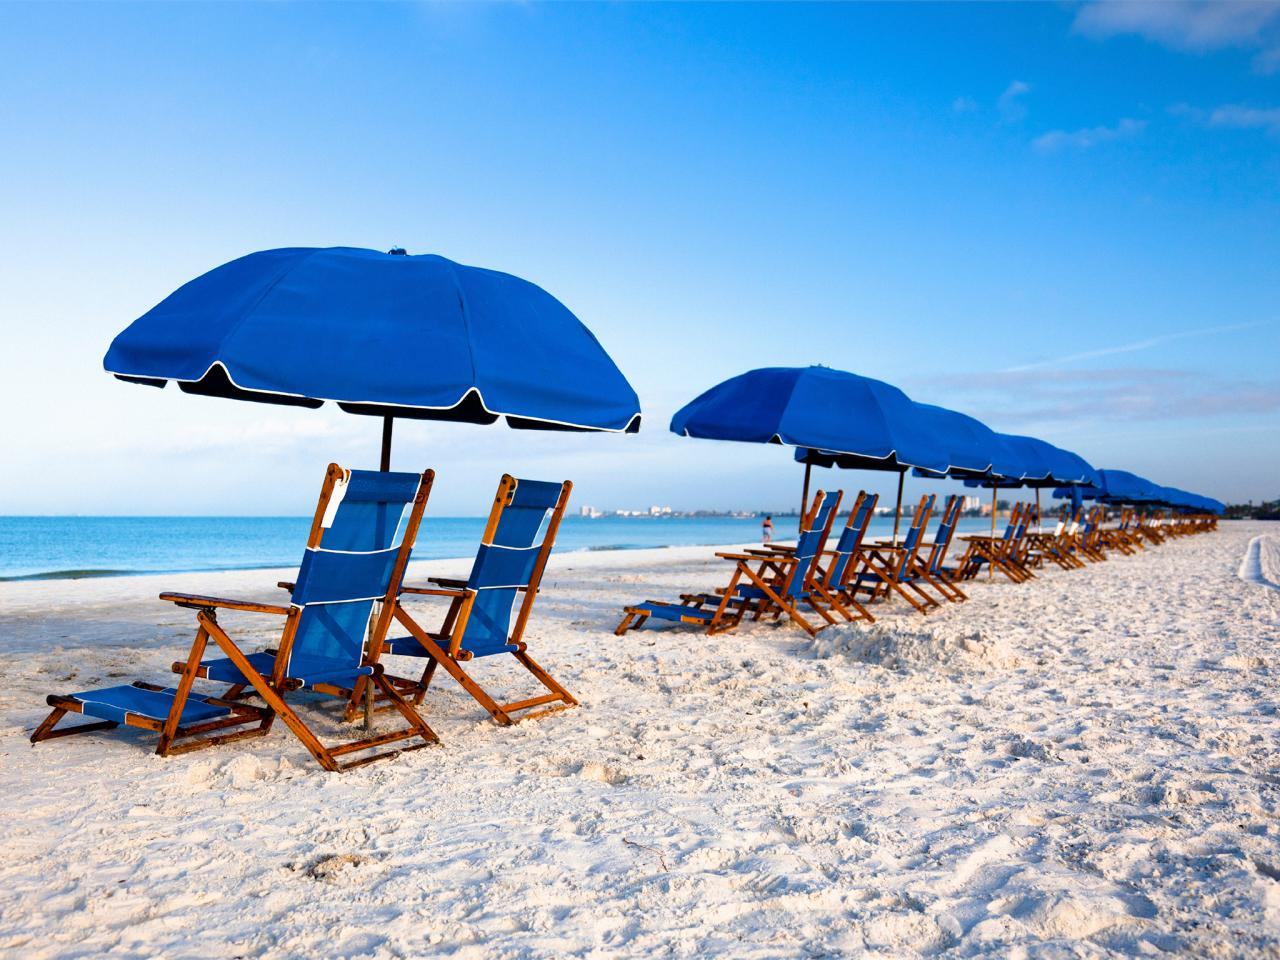 Enjoy the sunny day of summer on the beach with the best beach chairs